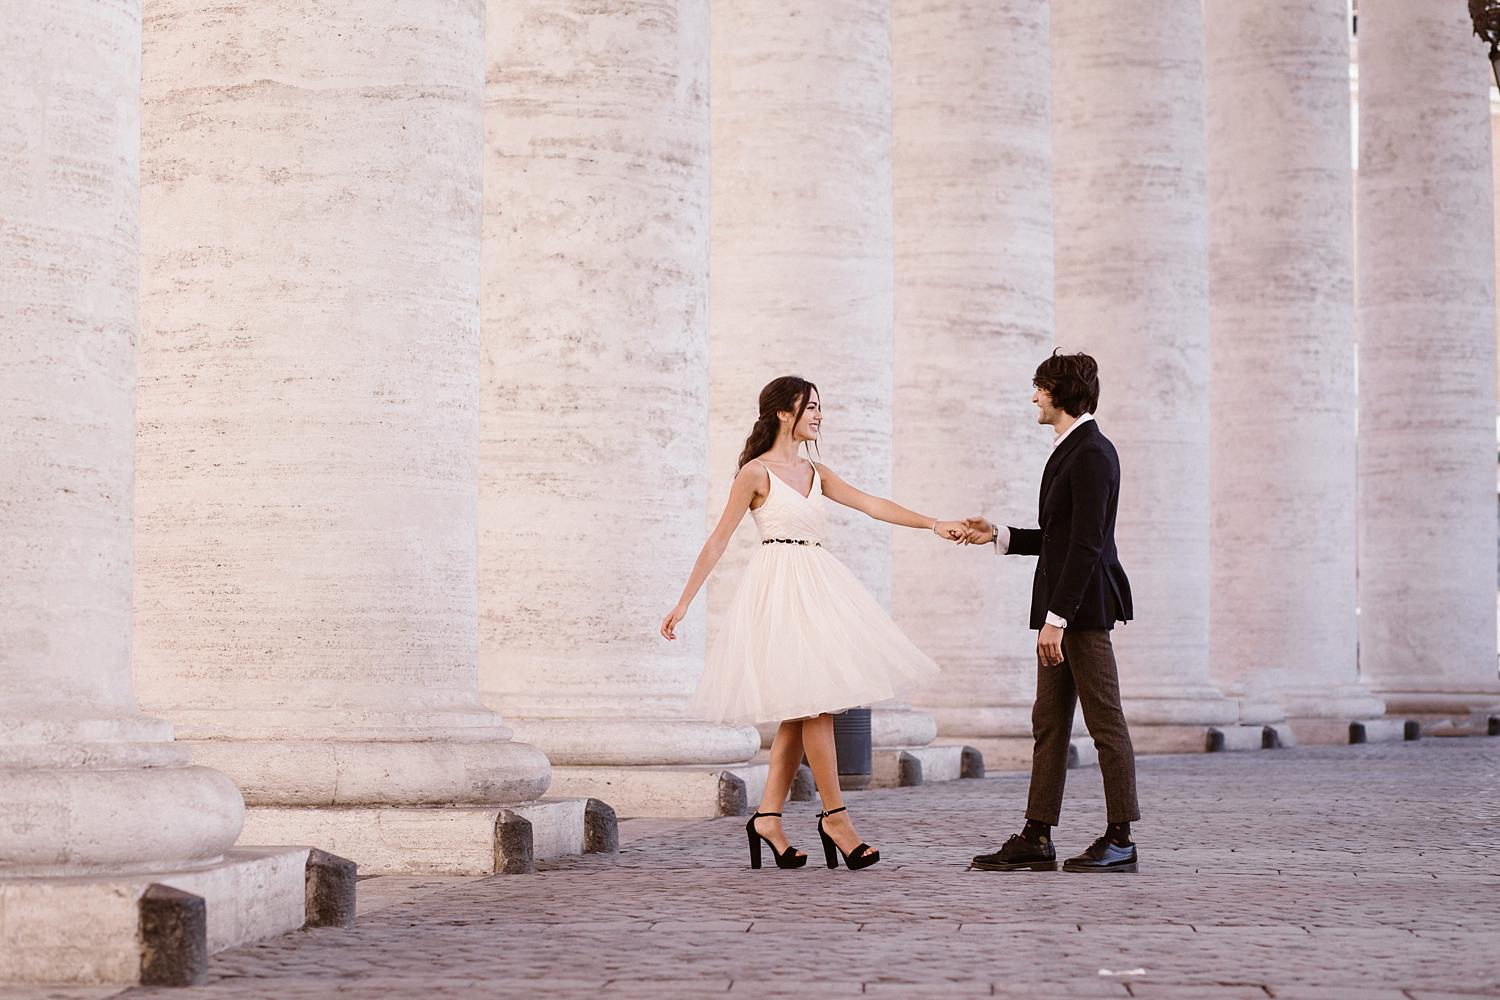 gs weddingphotographer rome 03 - Giulia & Simone - Elegant Couple Shooting in Rome